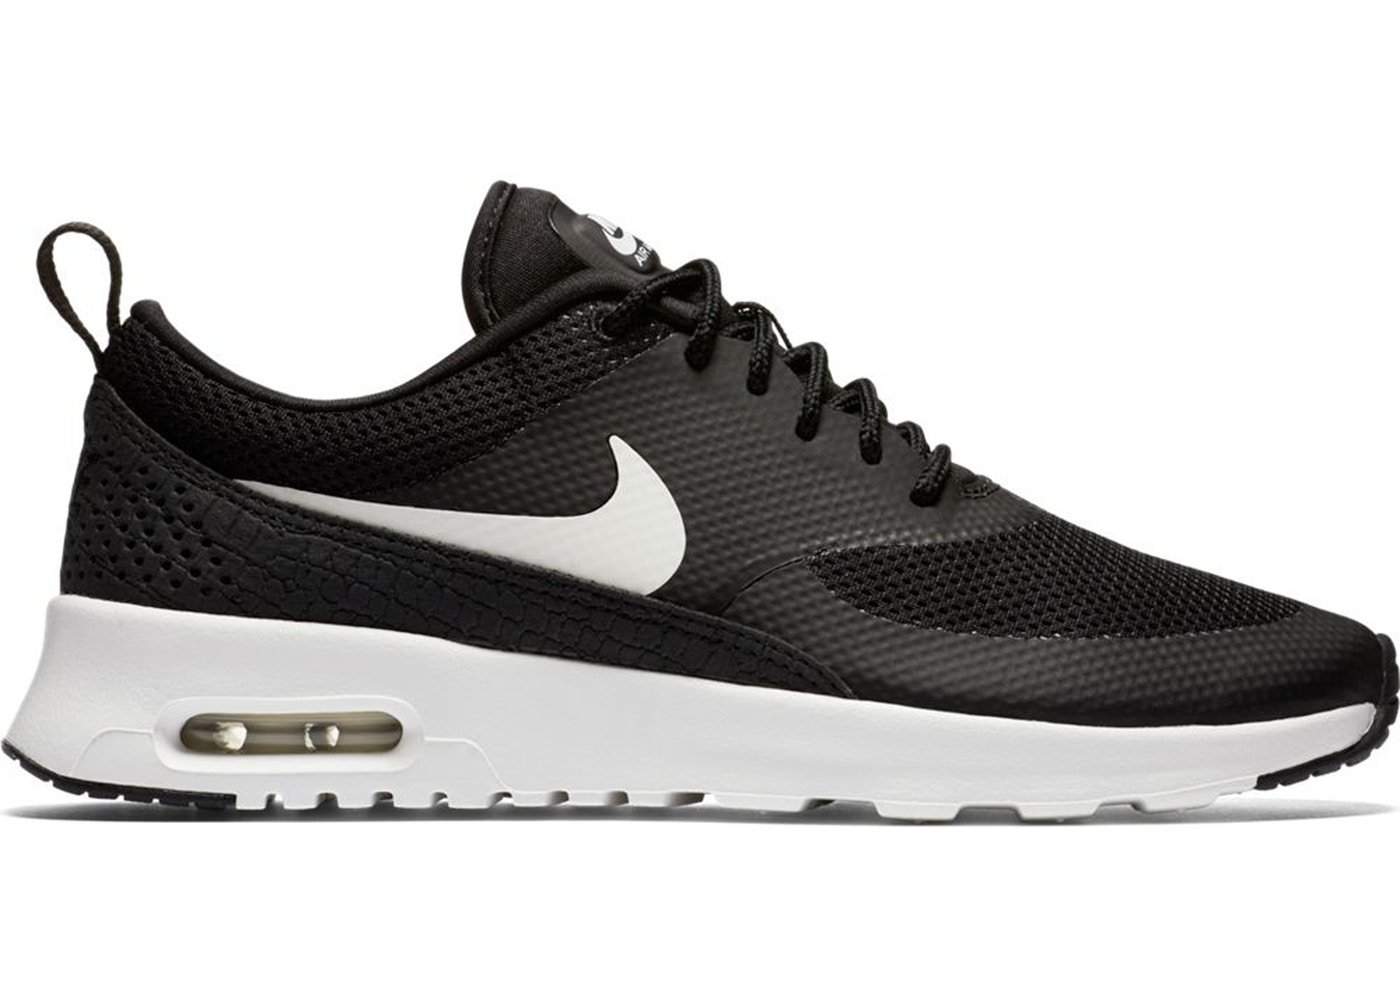 Nike Air Max Other Shoes New Highest Bids